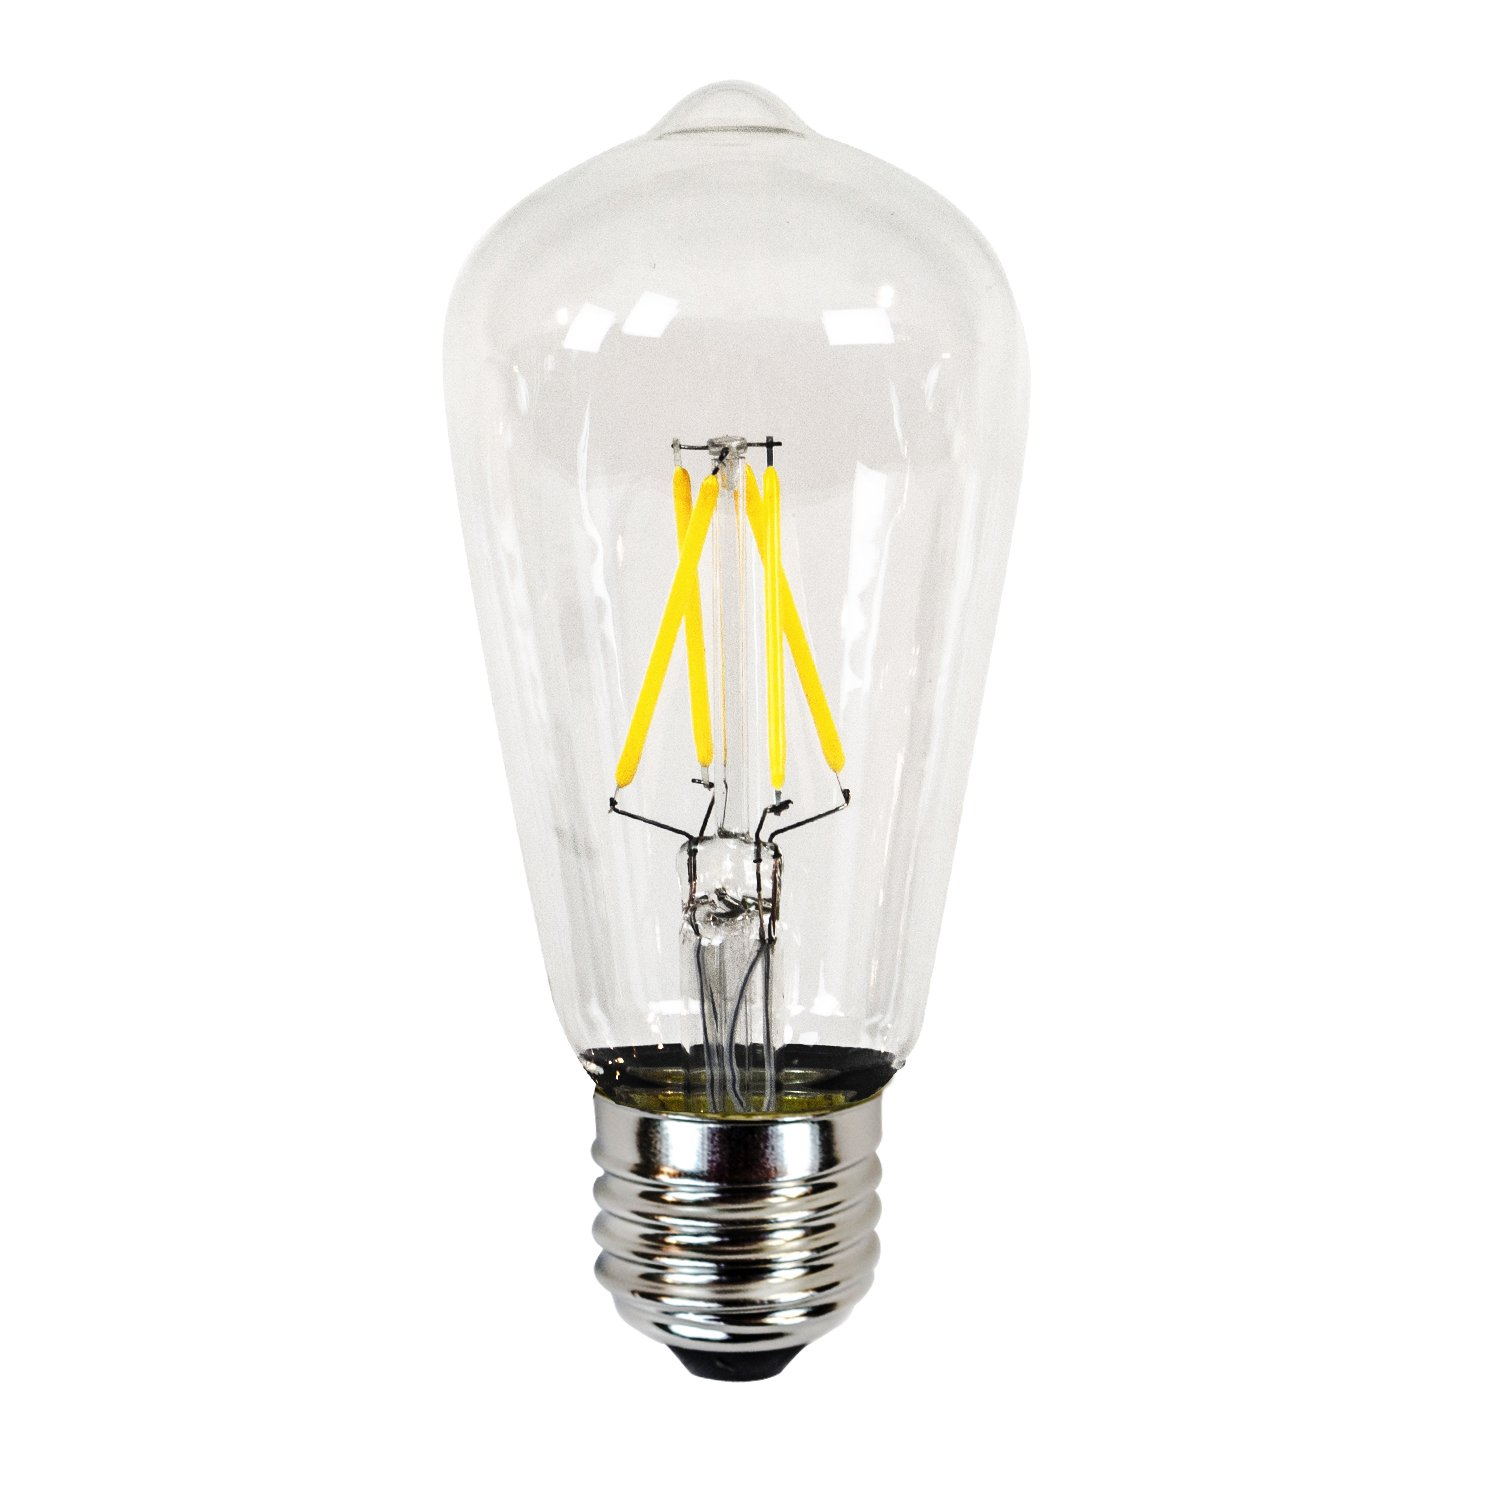 accessories mm brown can art products bulbs light clear led lighting bulb lunnom gb globe glass en ikea dimmable lumen